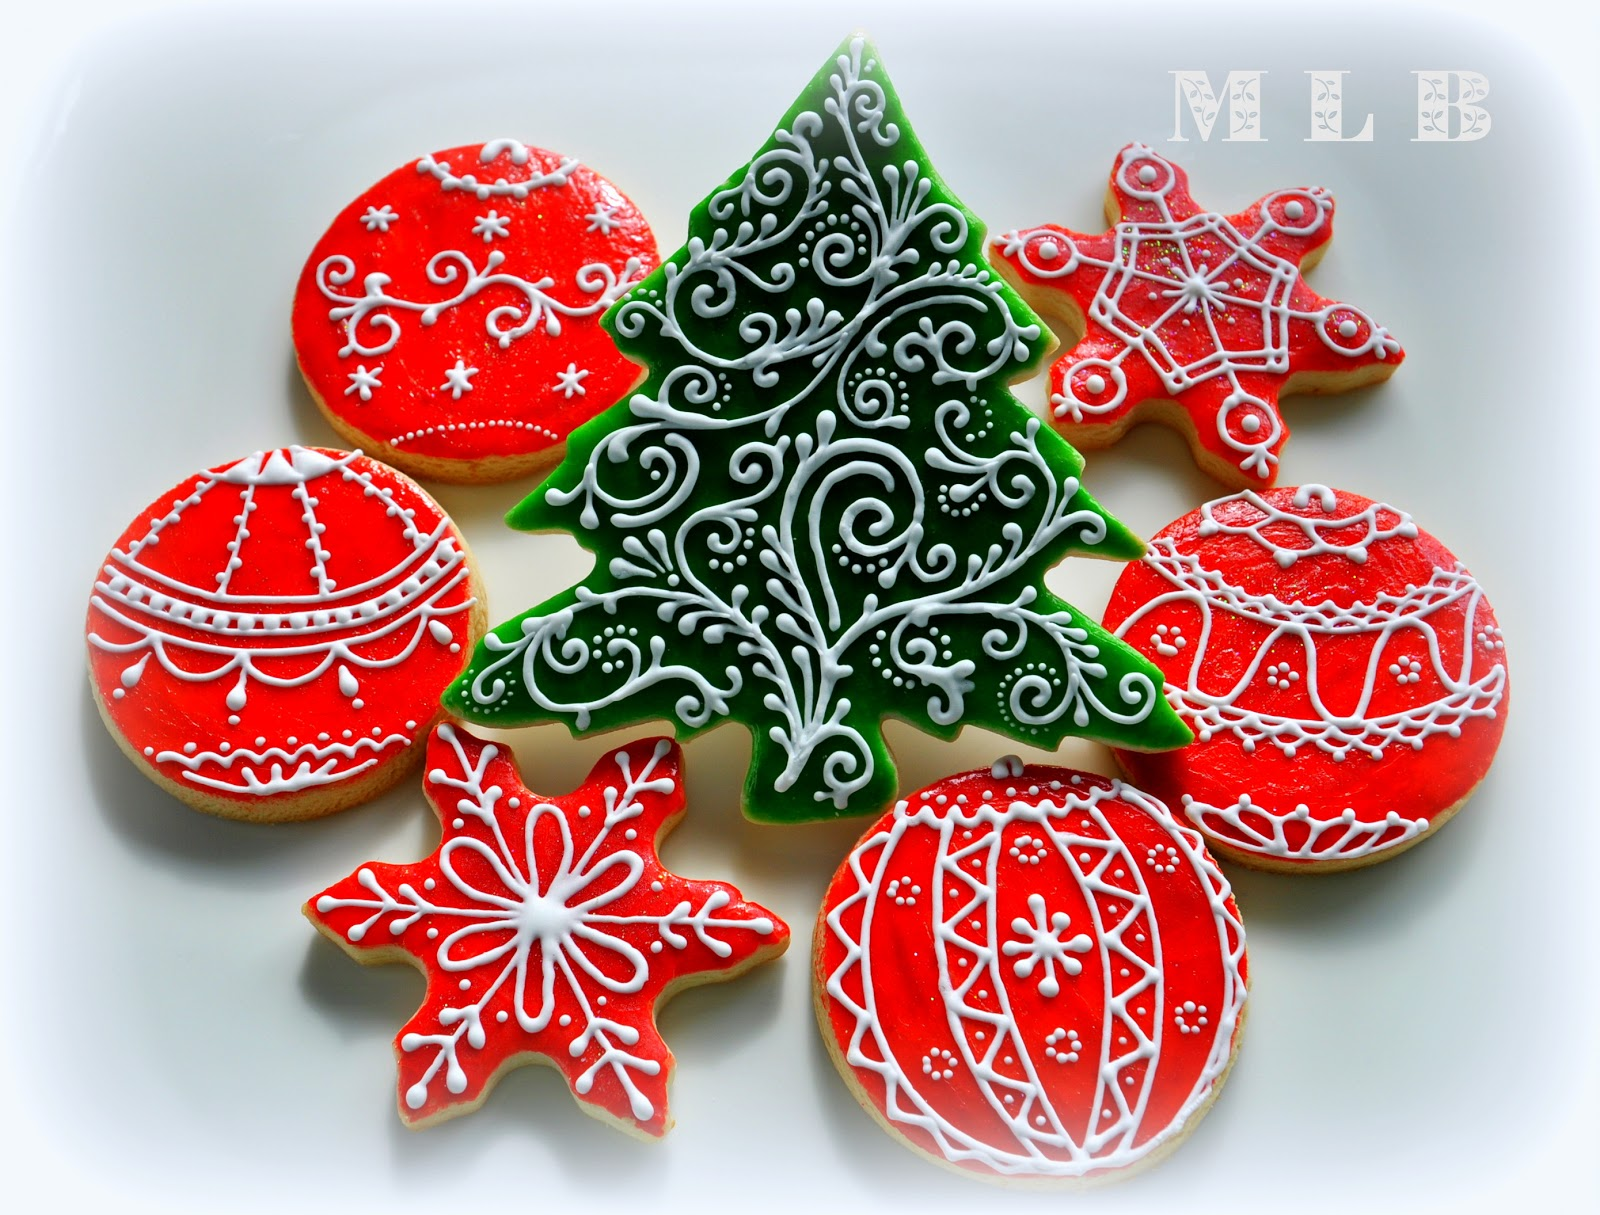 My little bakery 🌹: Christmas tree cookies...And polish ...